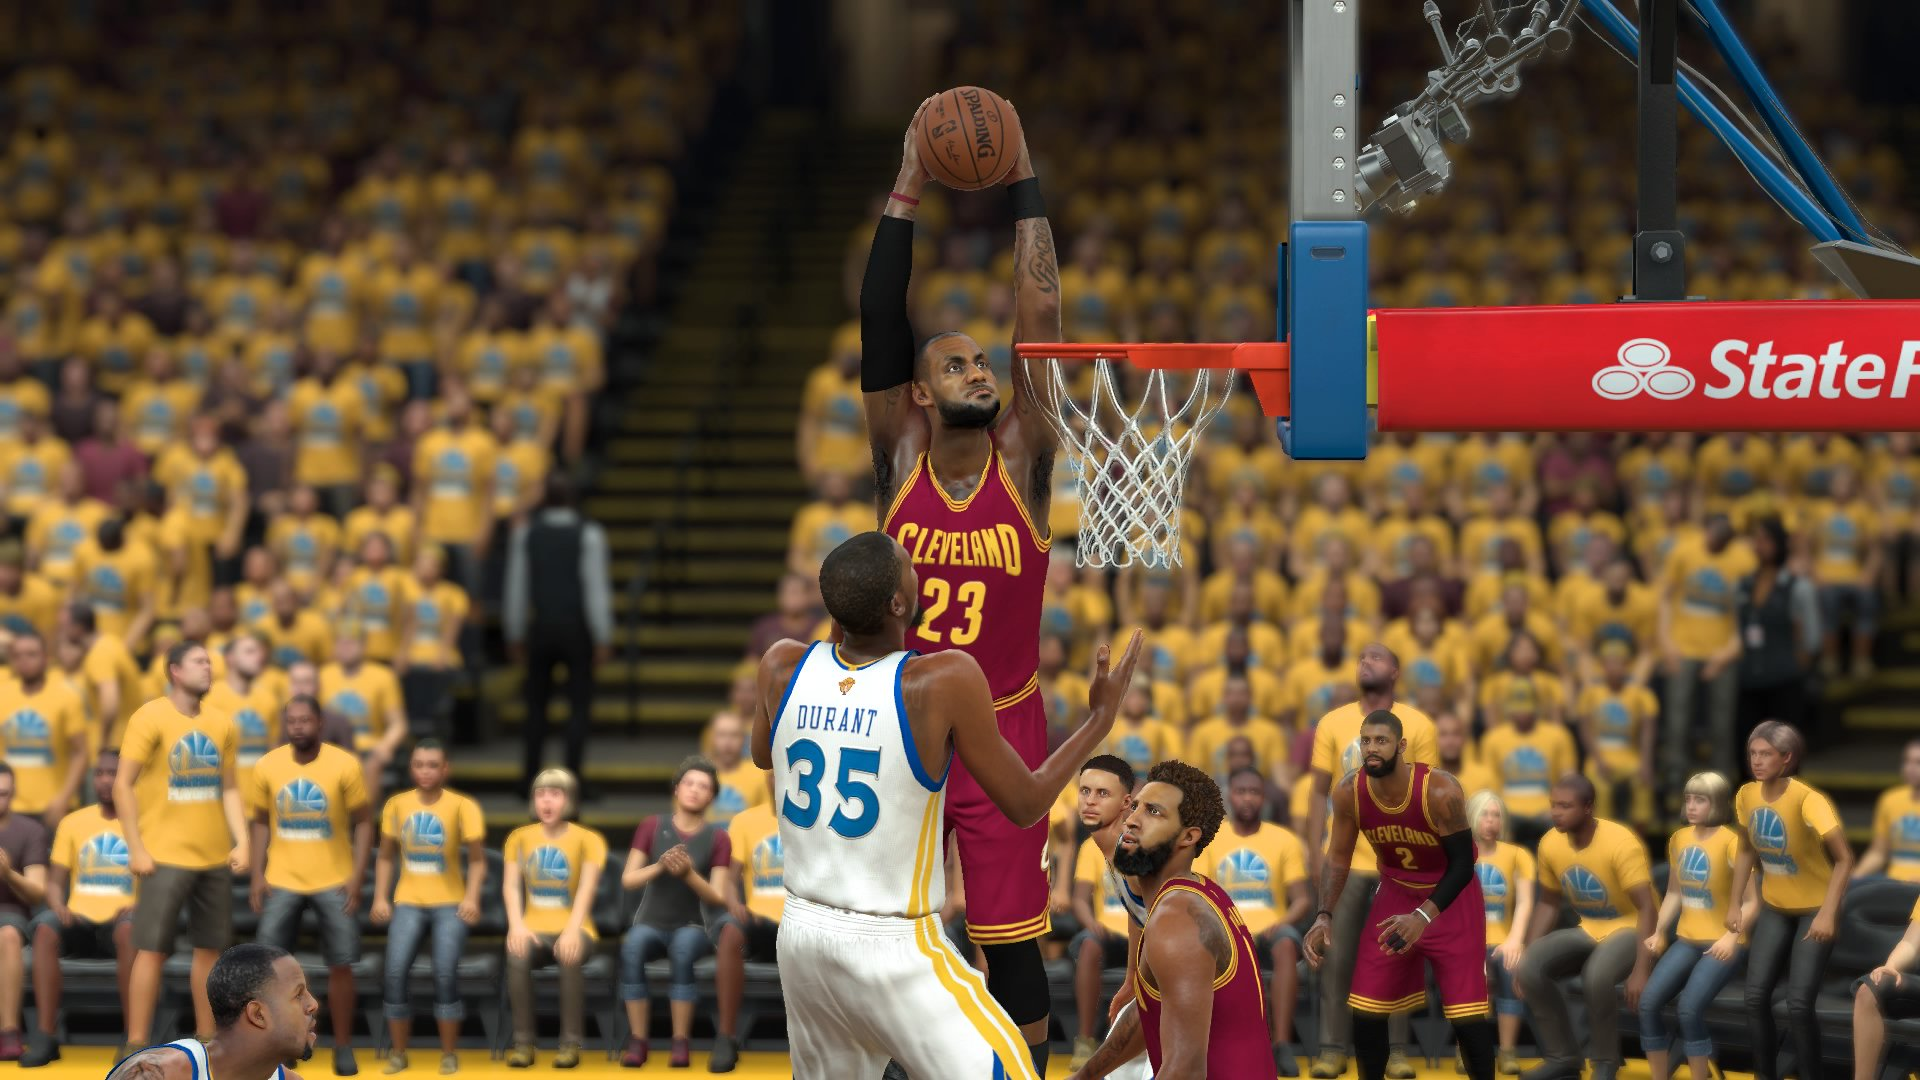 Miami heat lebron jamess vs golden state warriors nba2k17 miami - Cavs Top Warriors 138 131 To Stay Alive Oakland Calif Booed Every Time He Touched The Ball Lebron James Cut Through Golden State S Defense And Made